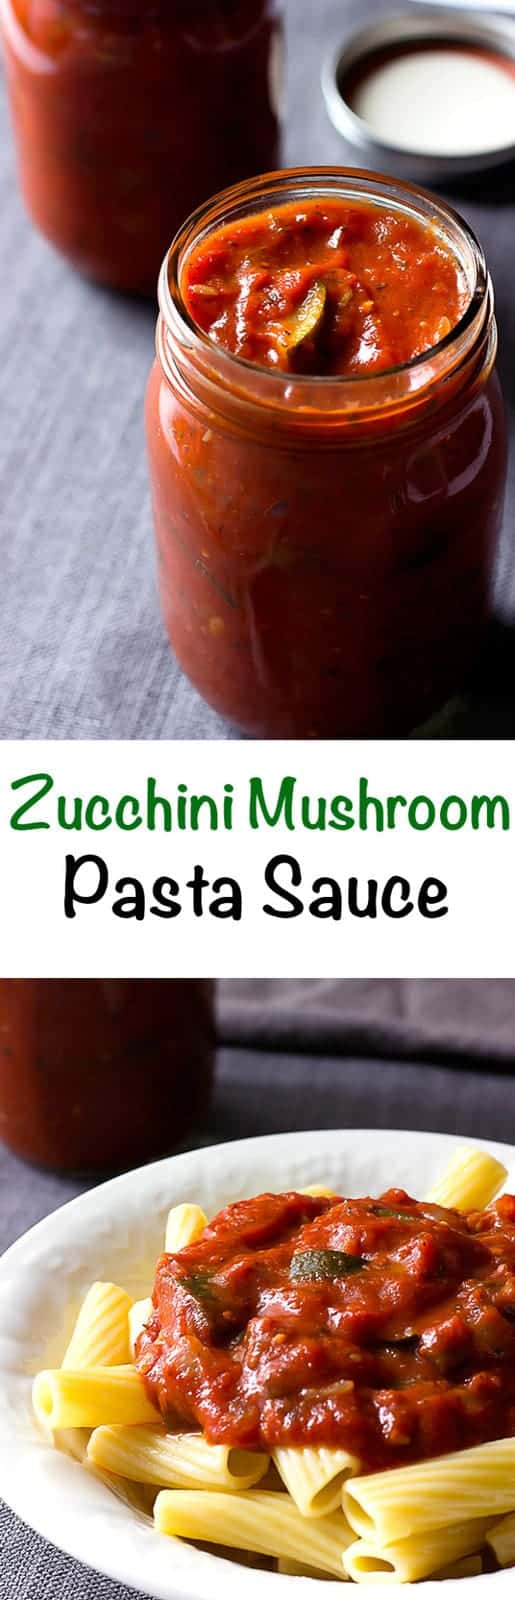 2 image collage with text showing Zucchini Mushroom Pasta Sauce